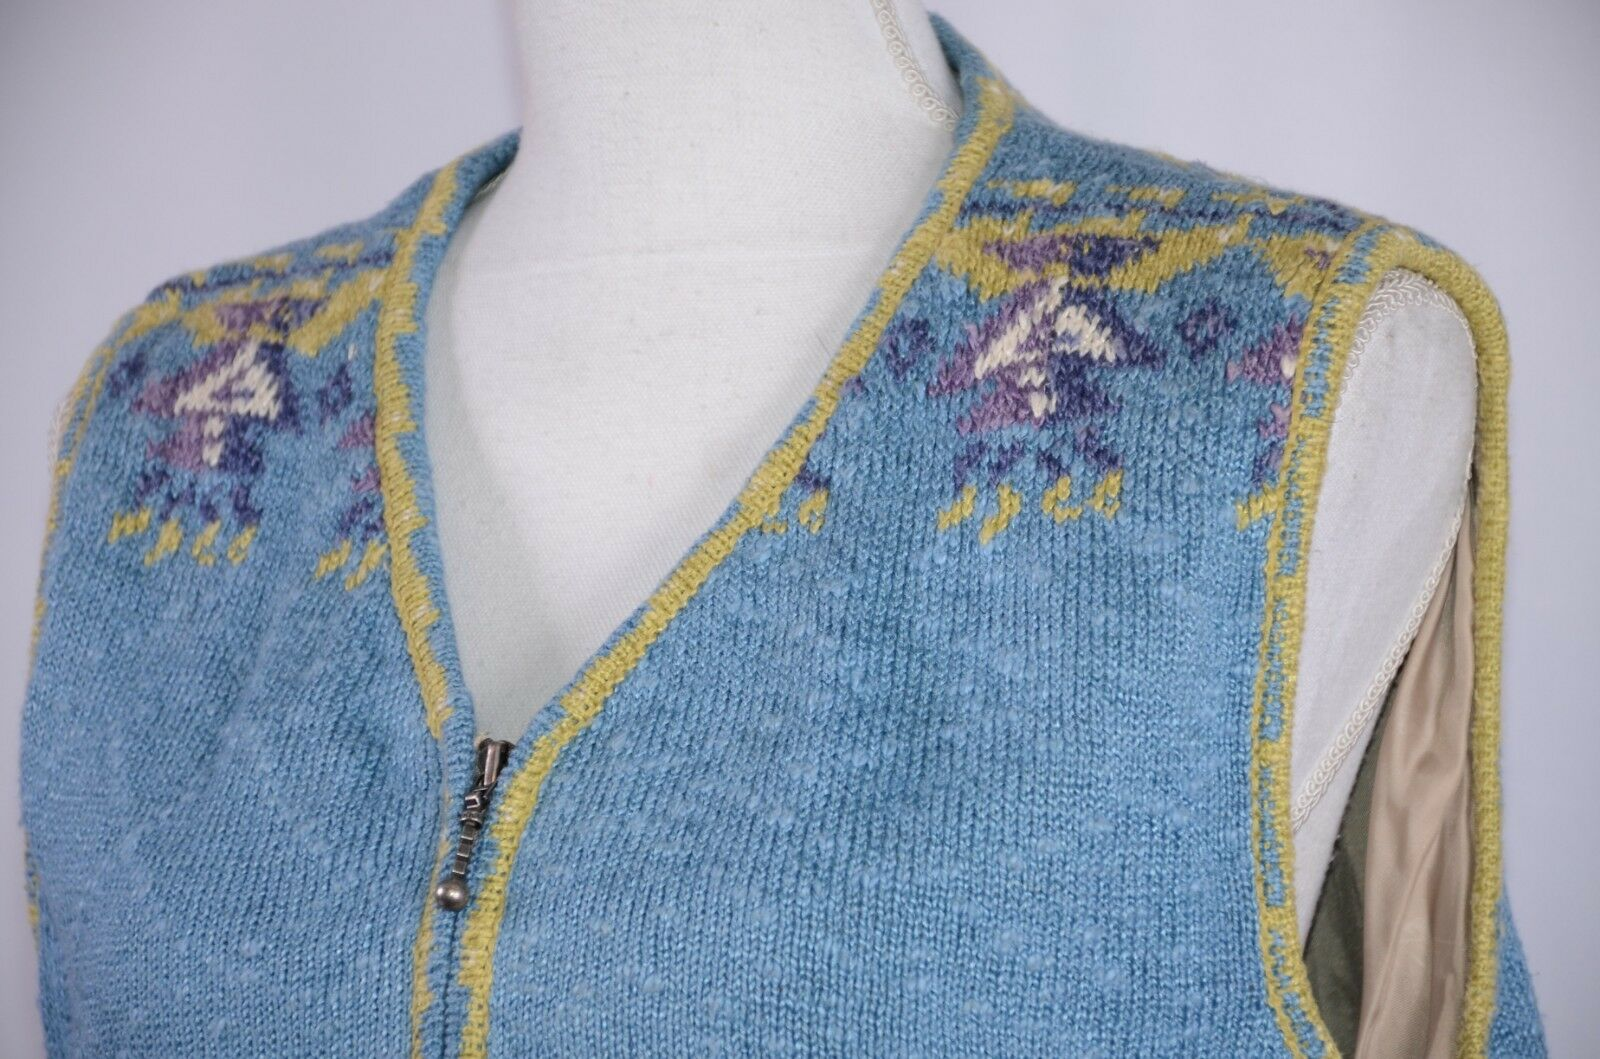 f9d978ade027b Icelandic Design Women's Vest Size Large Lined Knitted colorful Full Zip  Horses